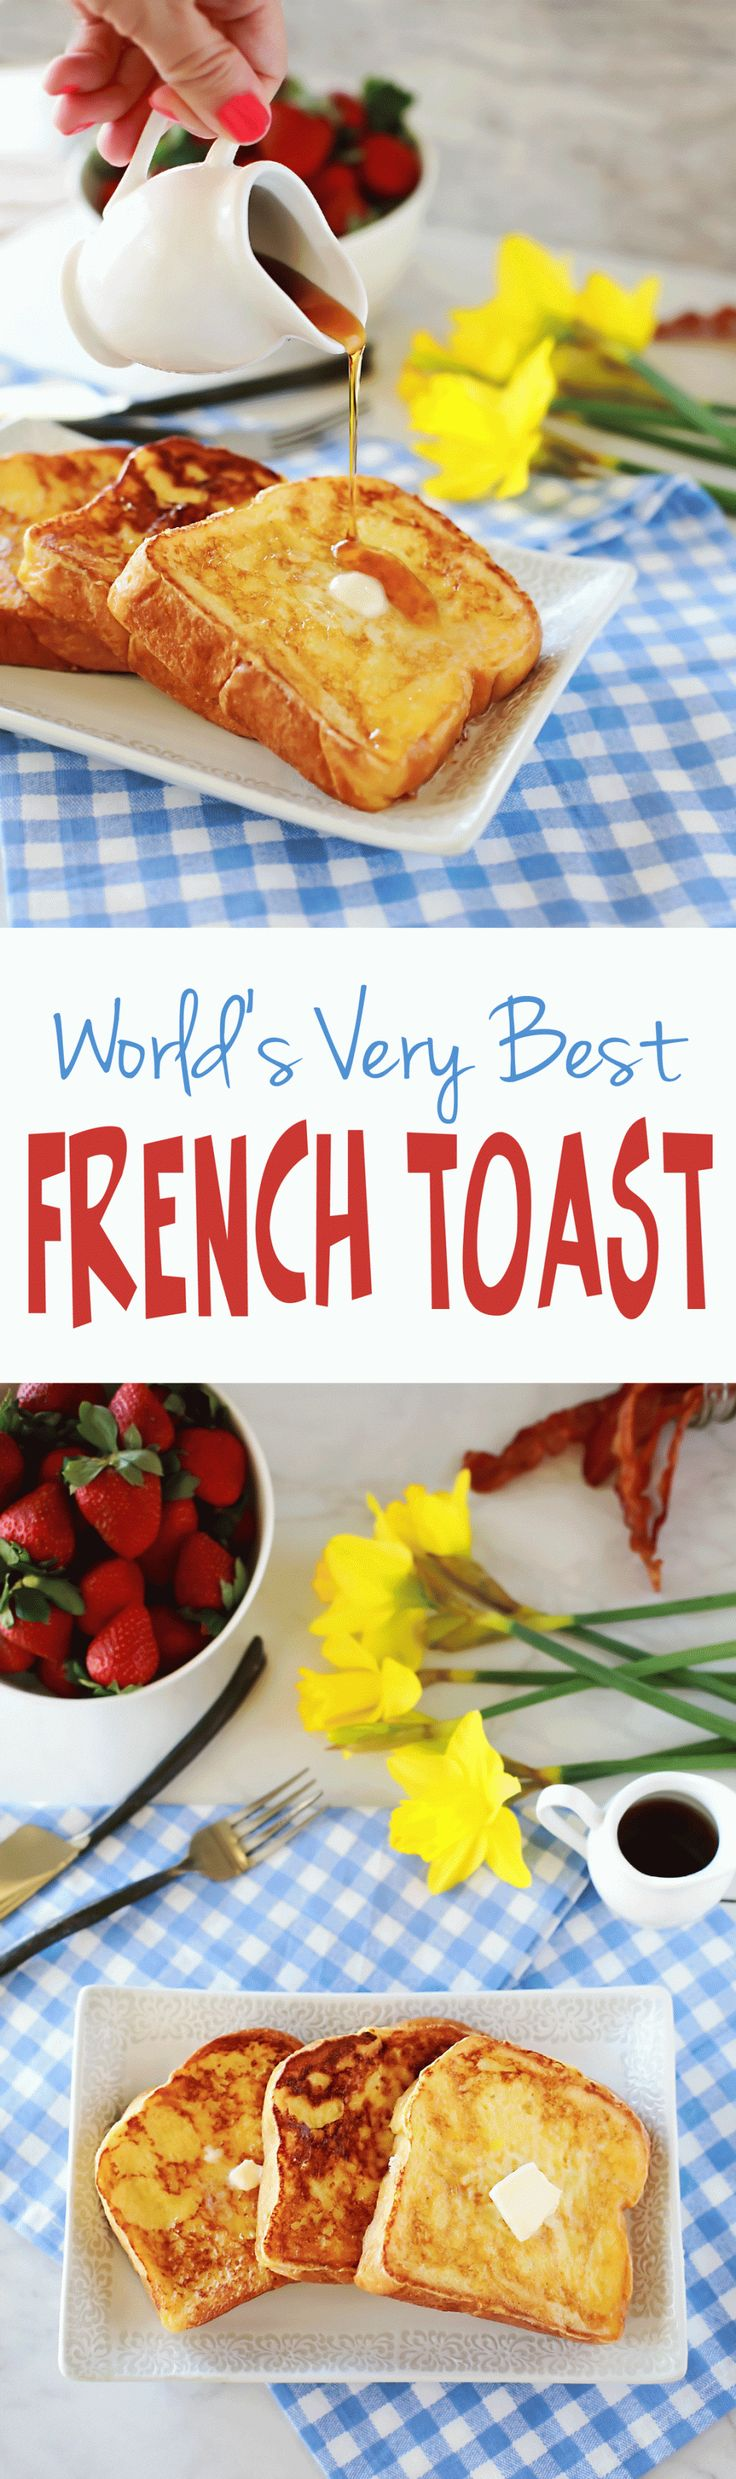 Amazing French Toast With Easy Thick Batter Recipe By Flirting With Flavor  This Was The